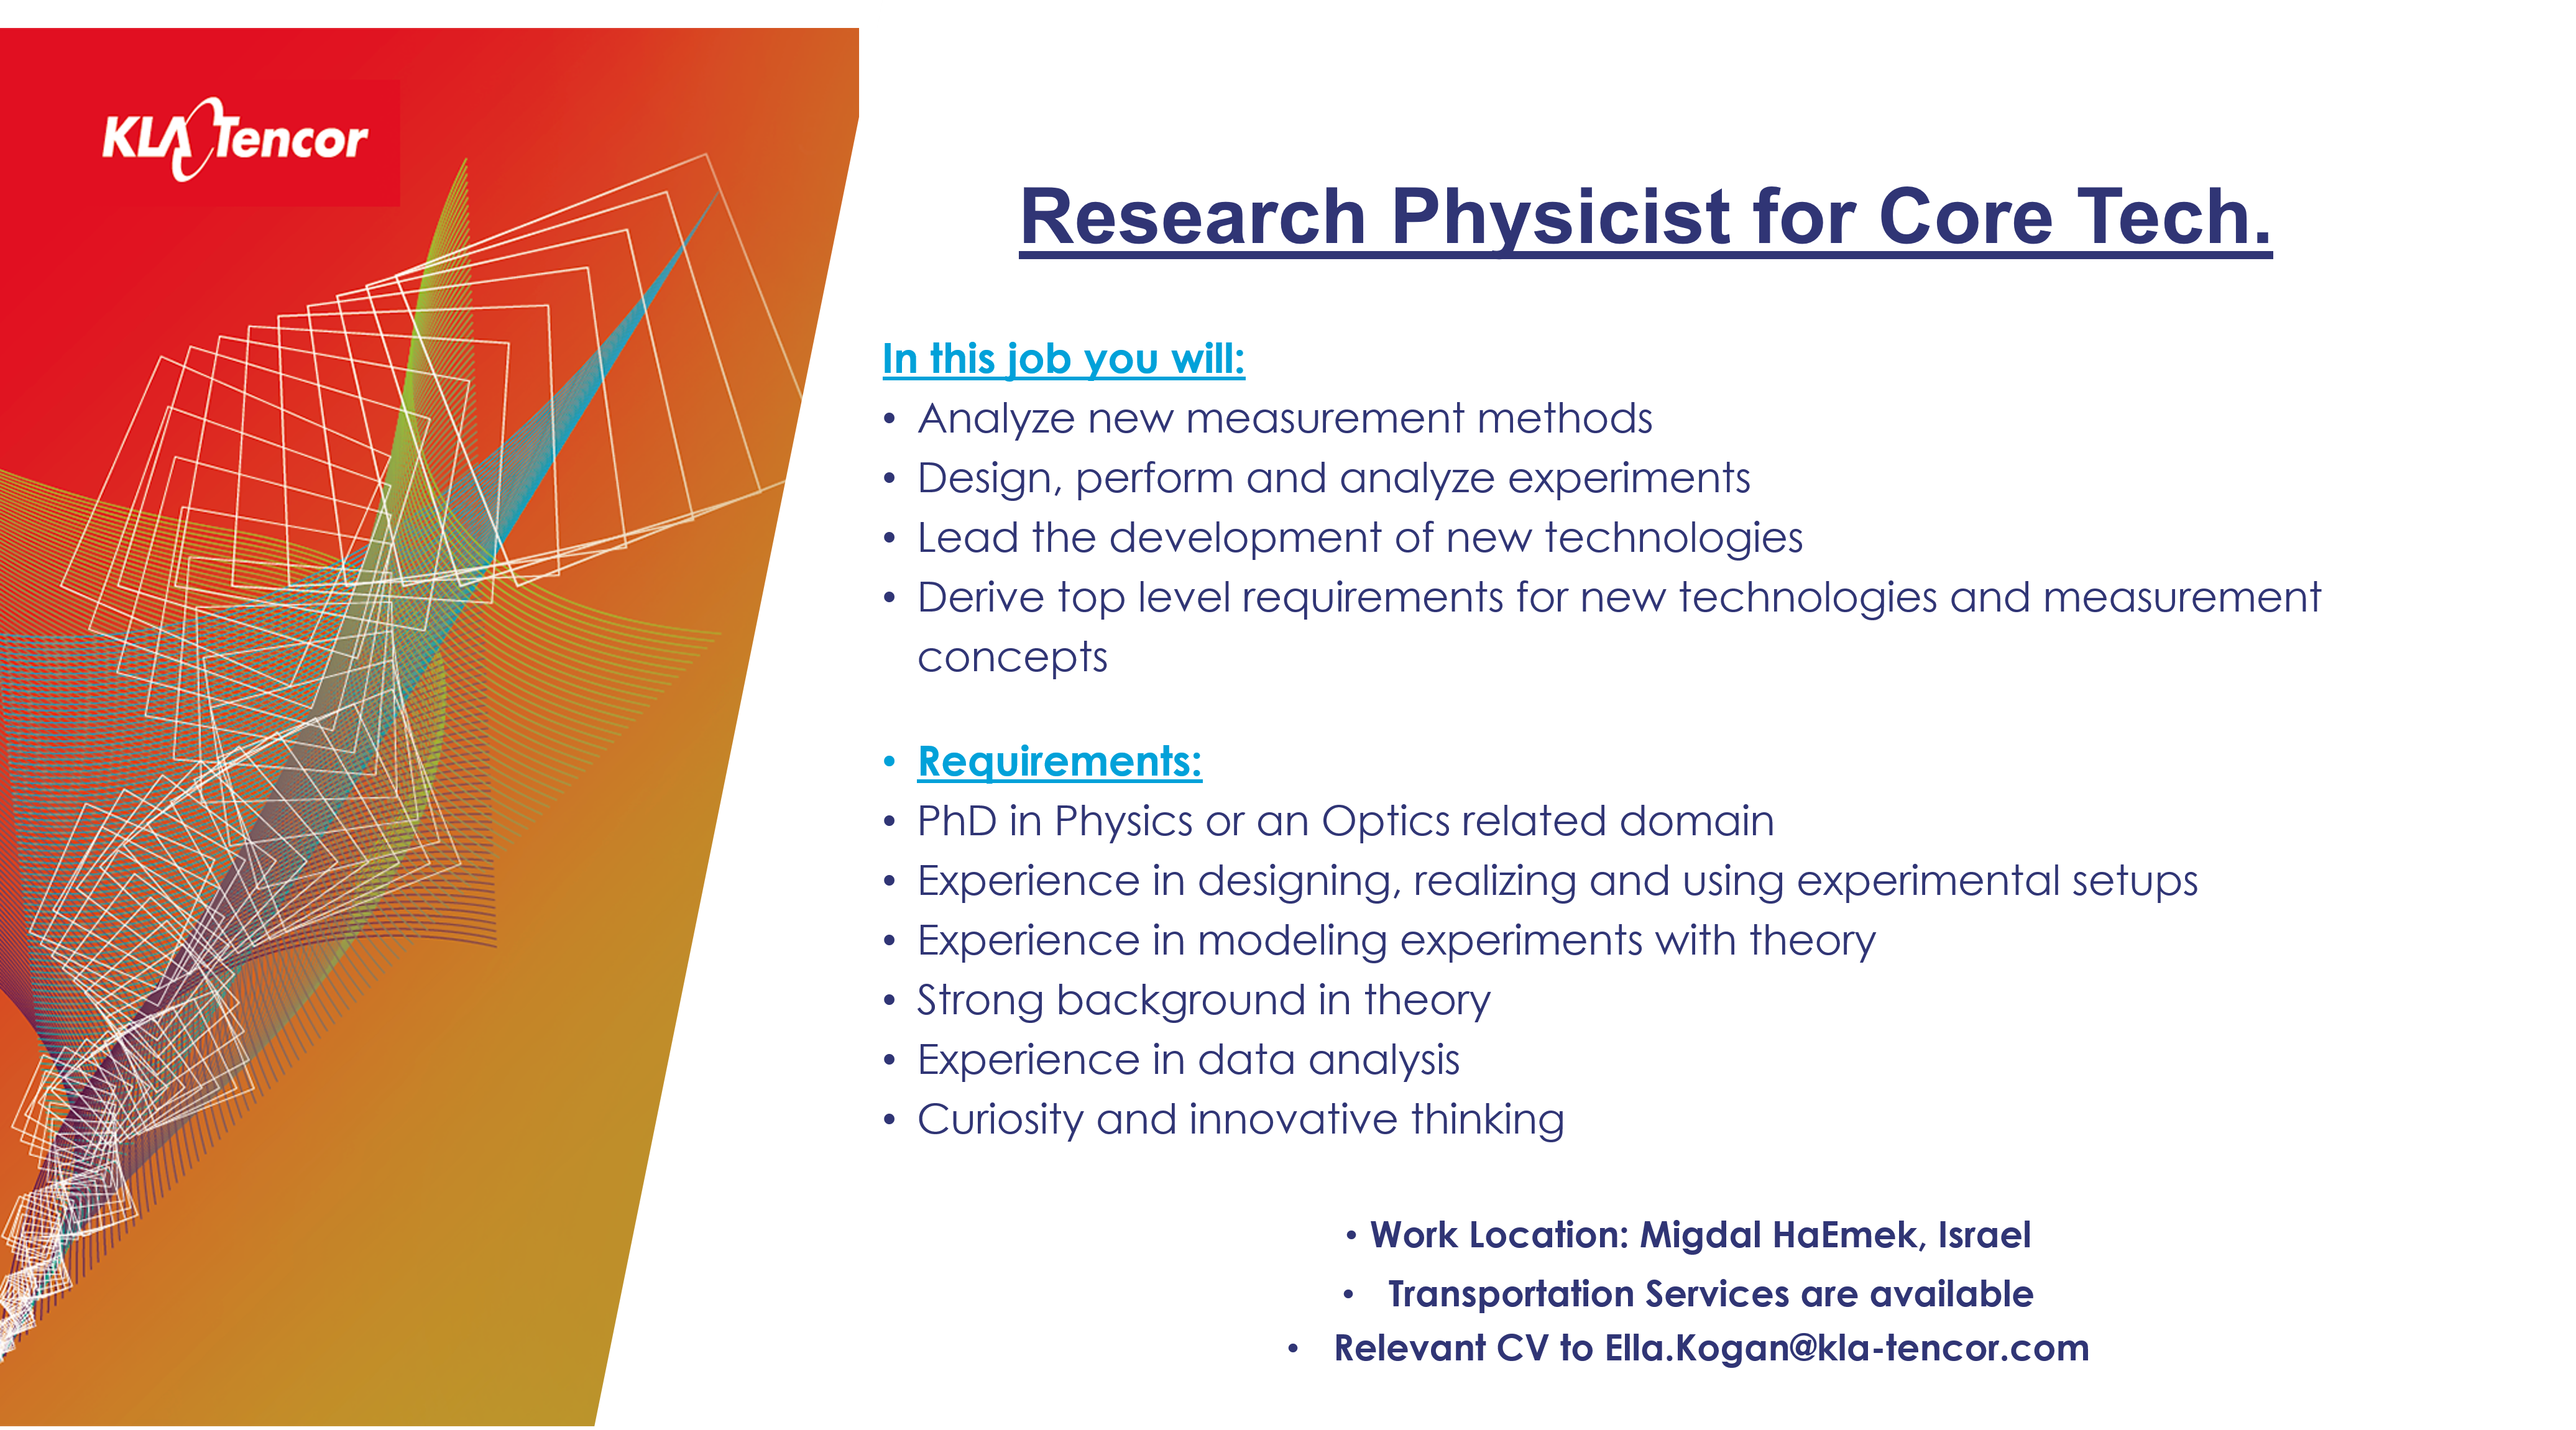 Research Physicist for Core Tech